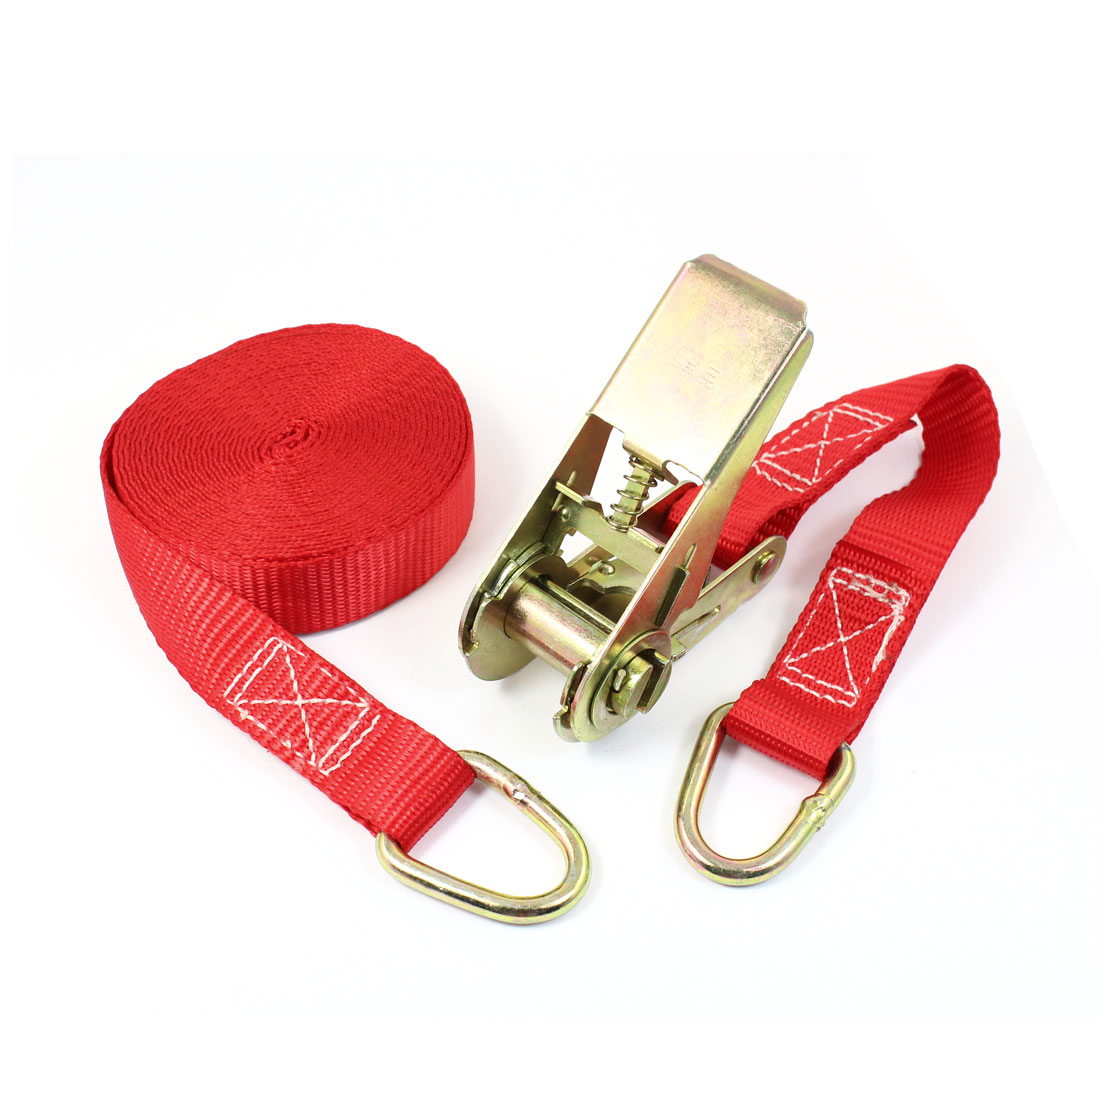 Metal D Shape Loop Cargo Binding Ratchet Tie Down Strap 5M 16ft Red